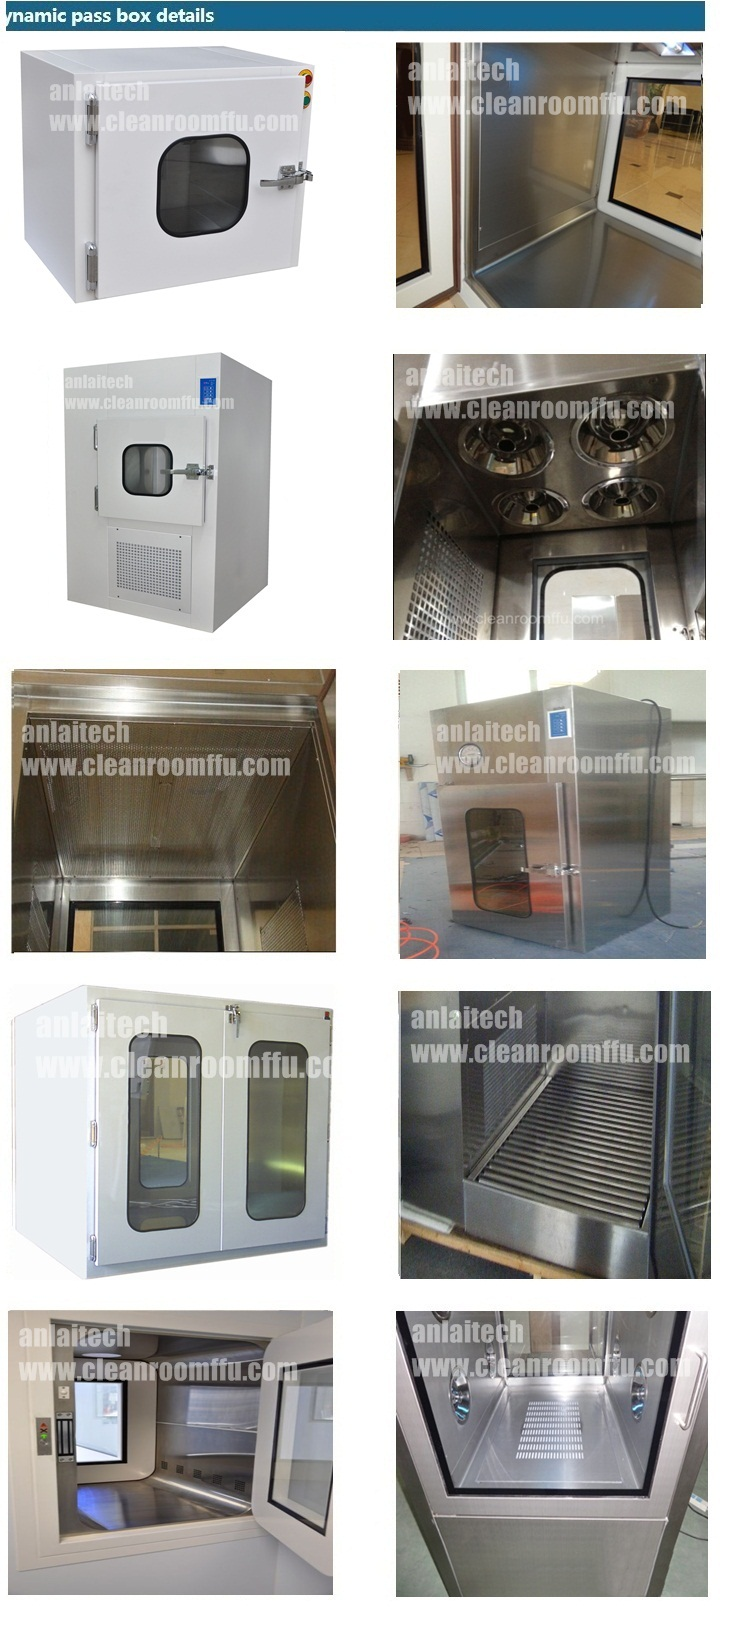 factory design and sale transfer window/pass box with low price